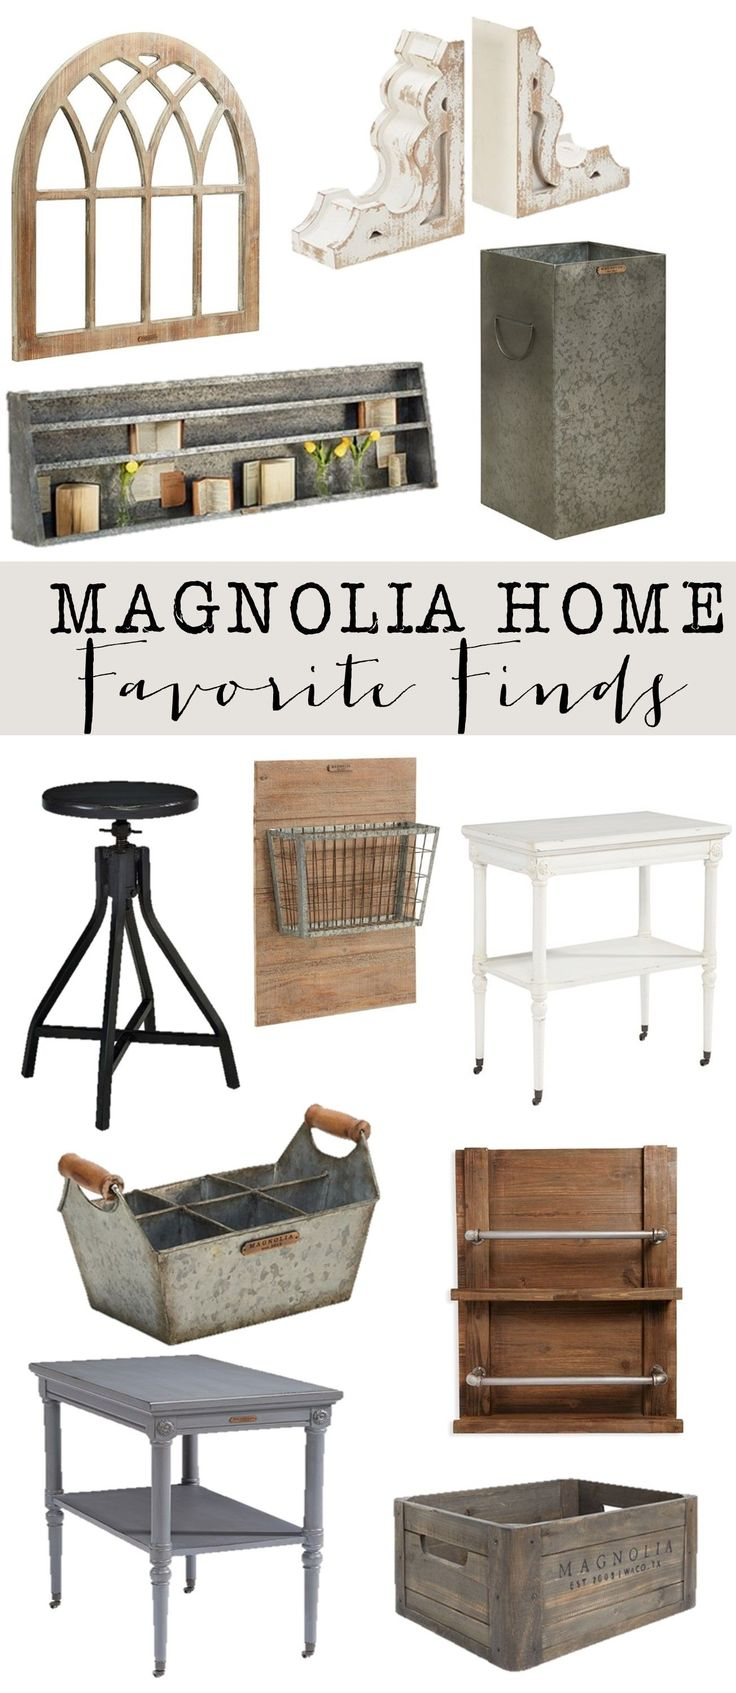 best 20+ magnolia homes ideas on pinterest | magnolia hgtv, boot